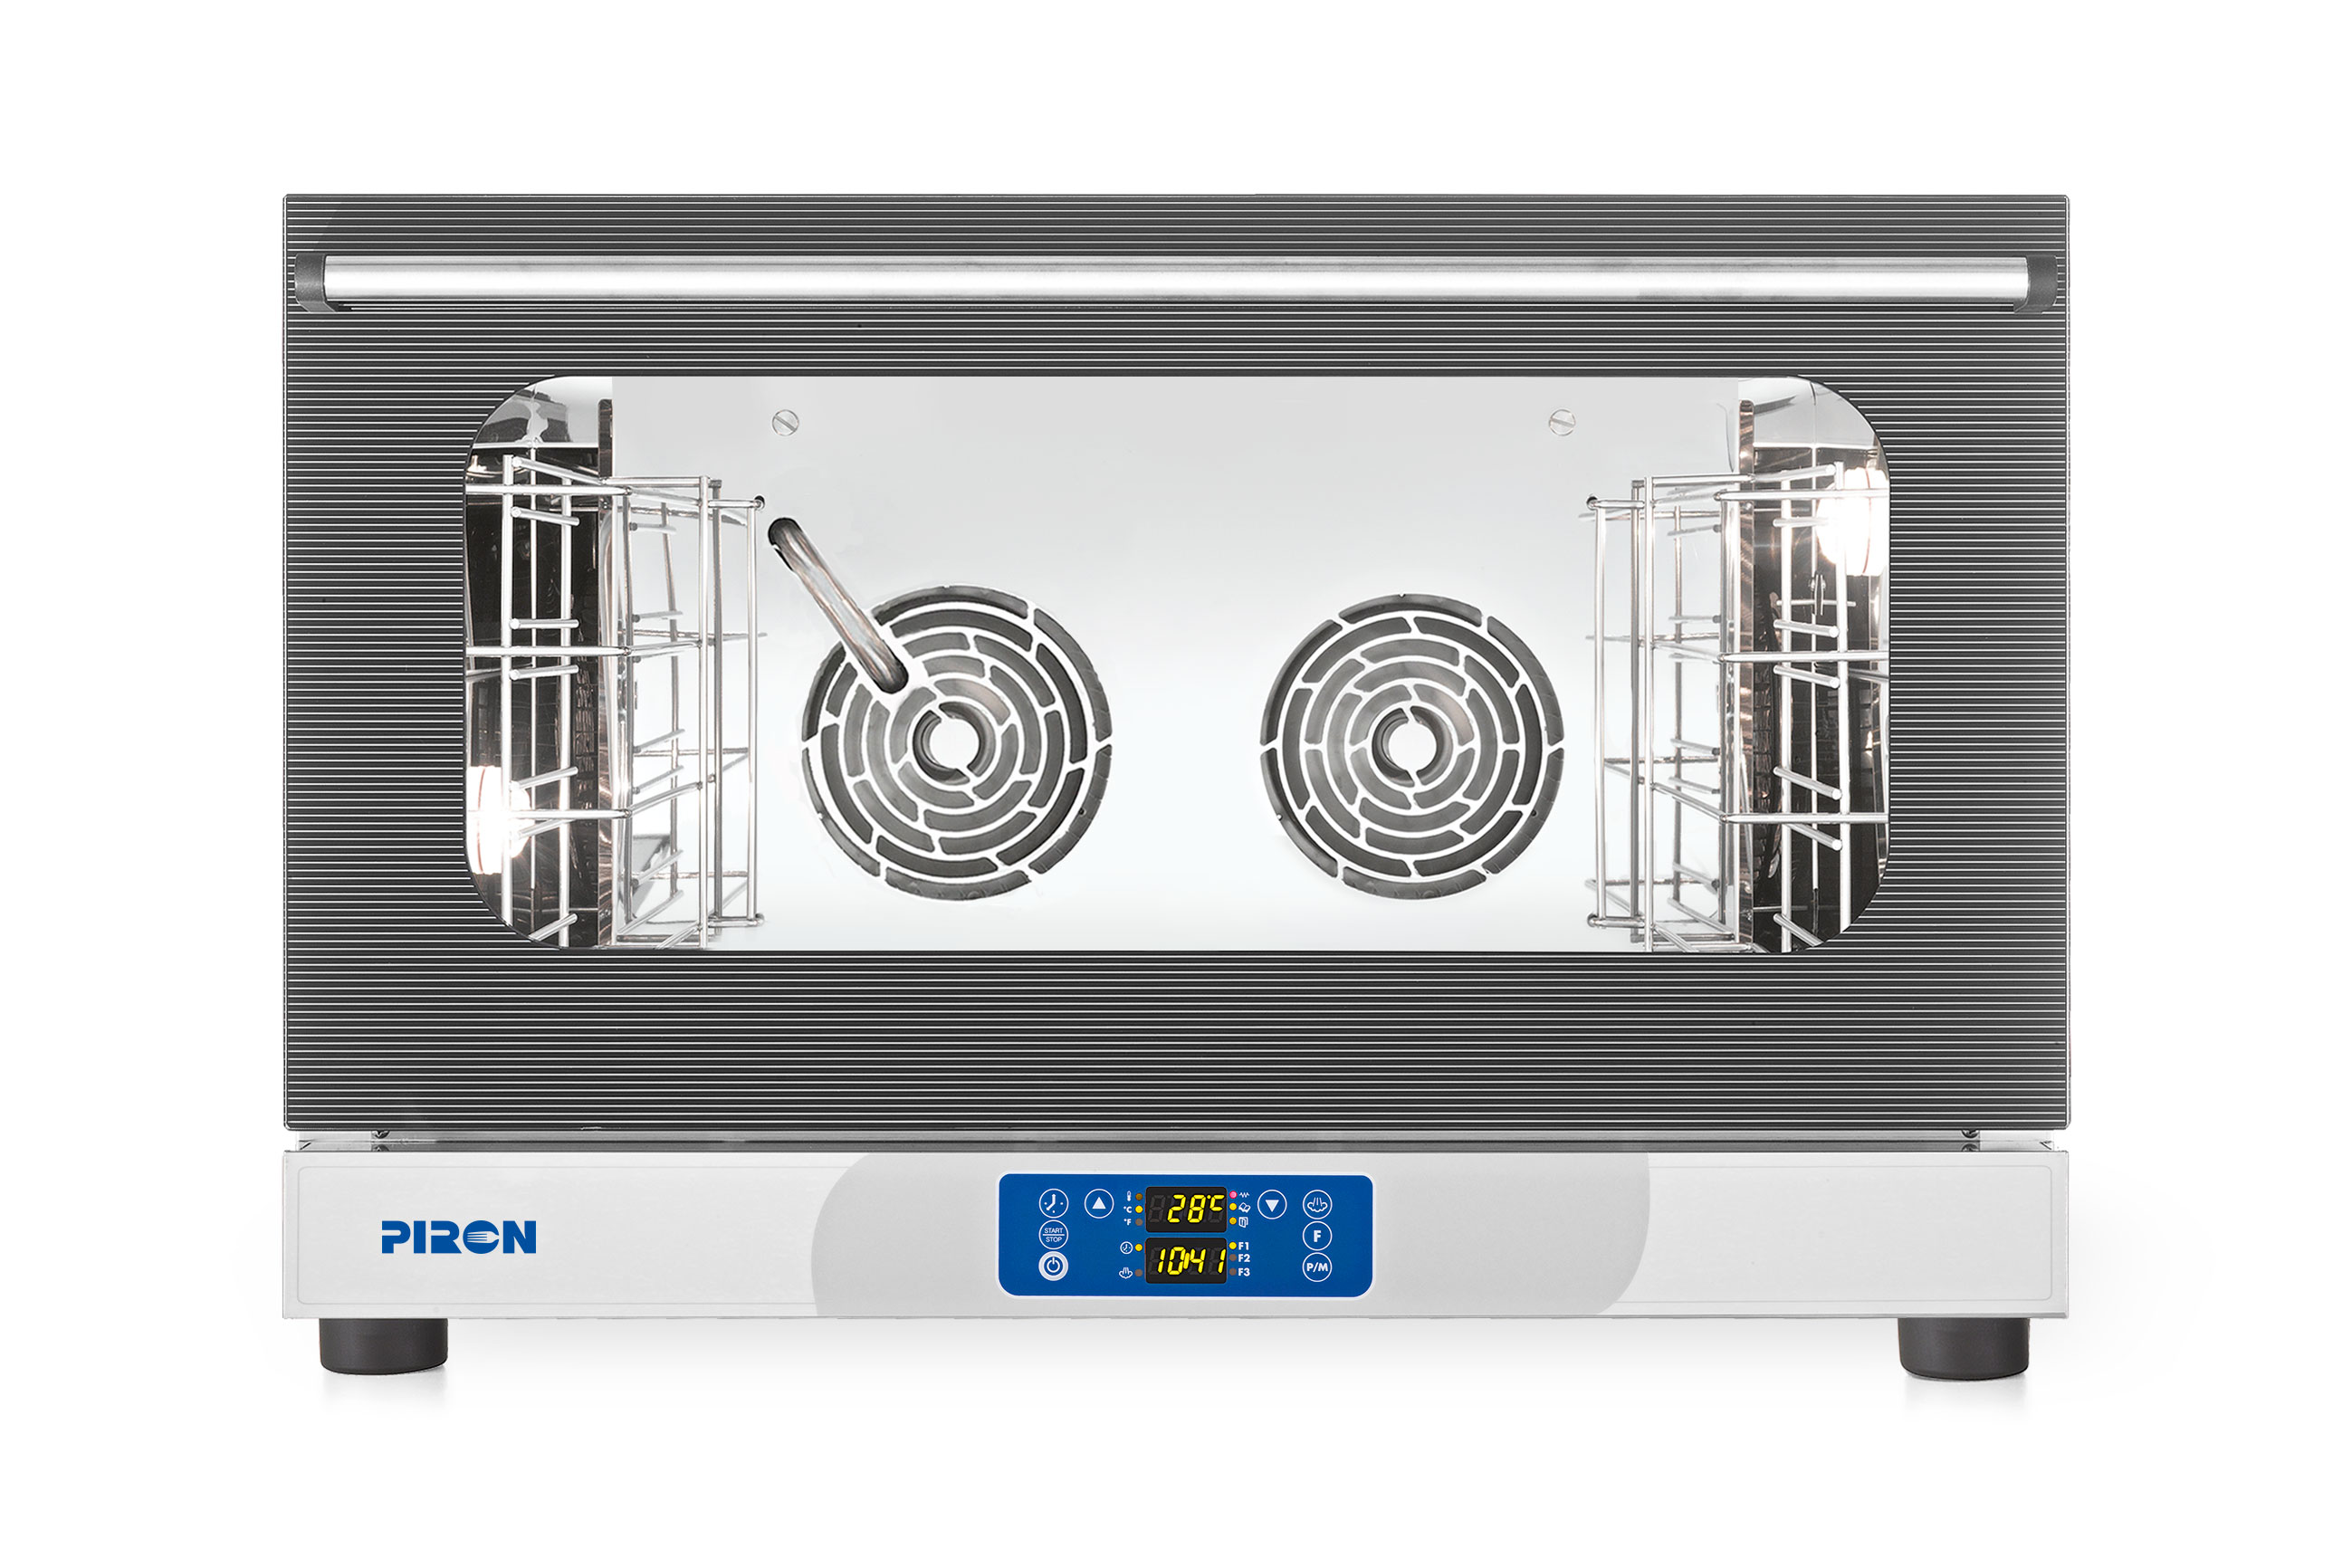 CONVECTION OVEN PIRON [CABOTO] - DIGITAL WITH HUMIDITY